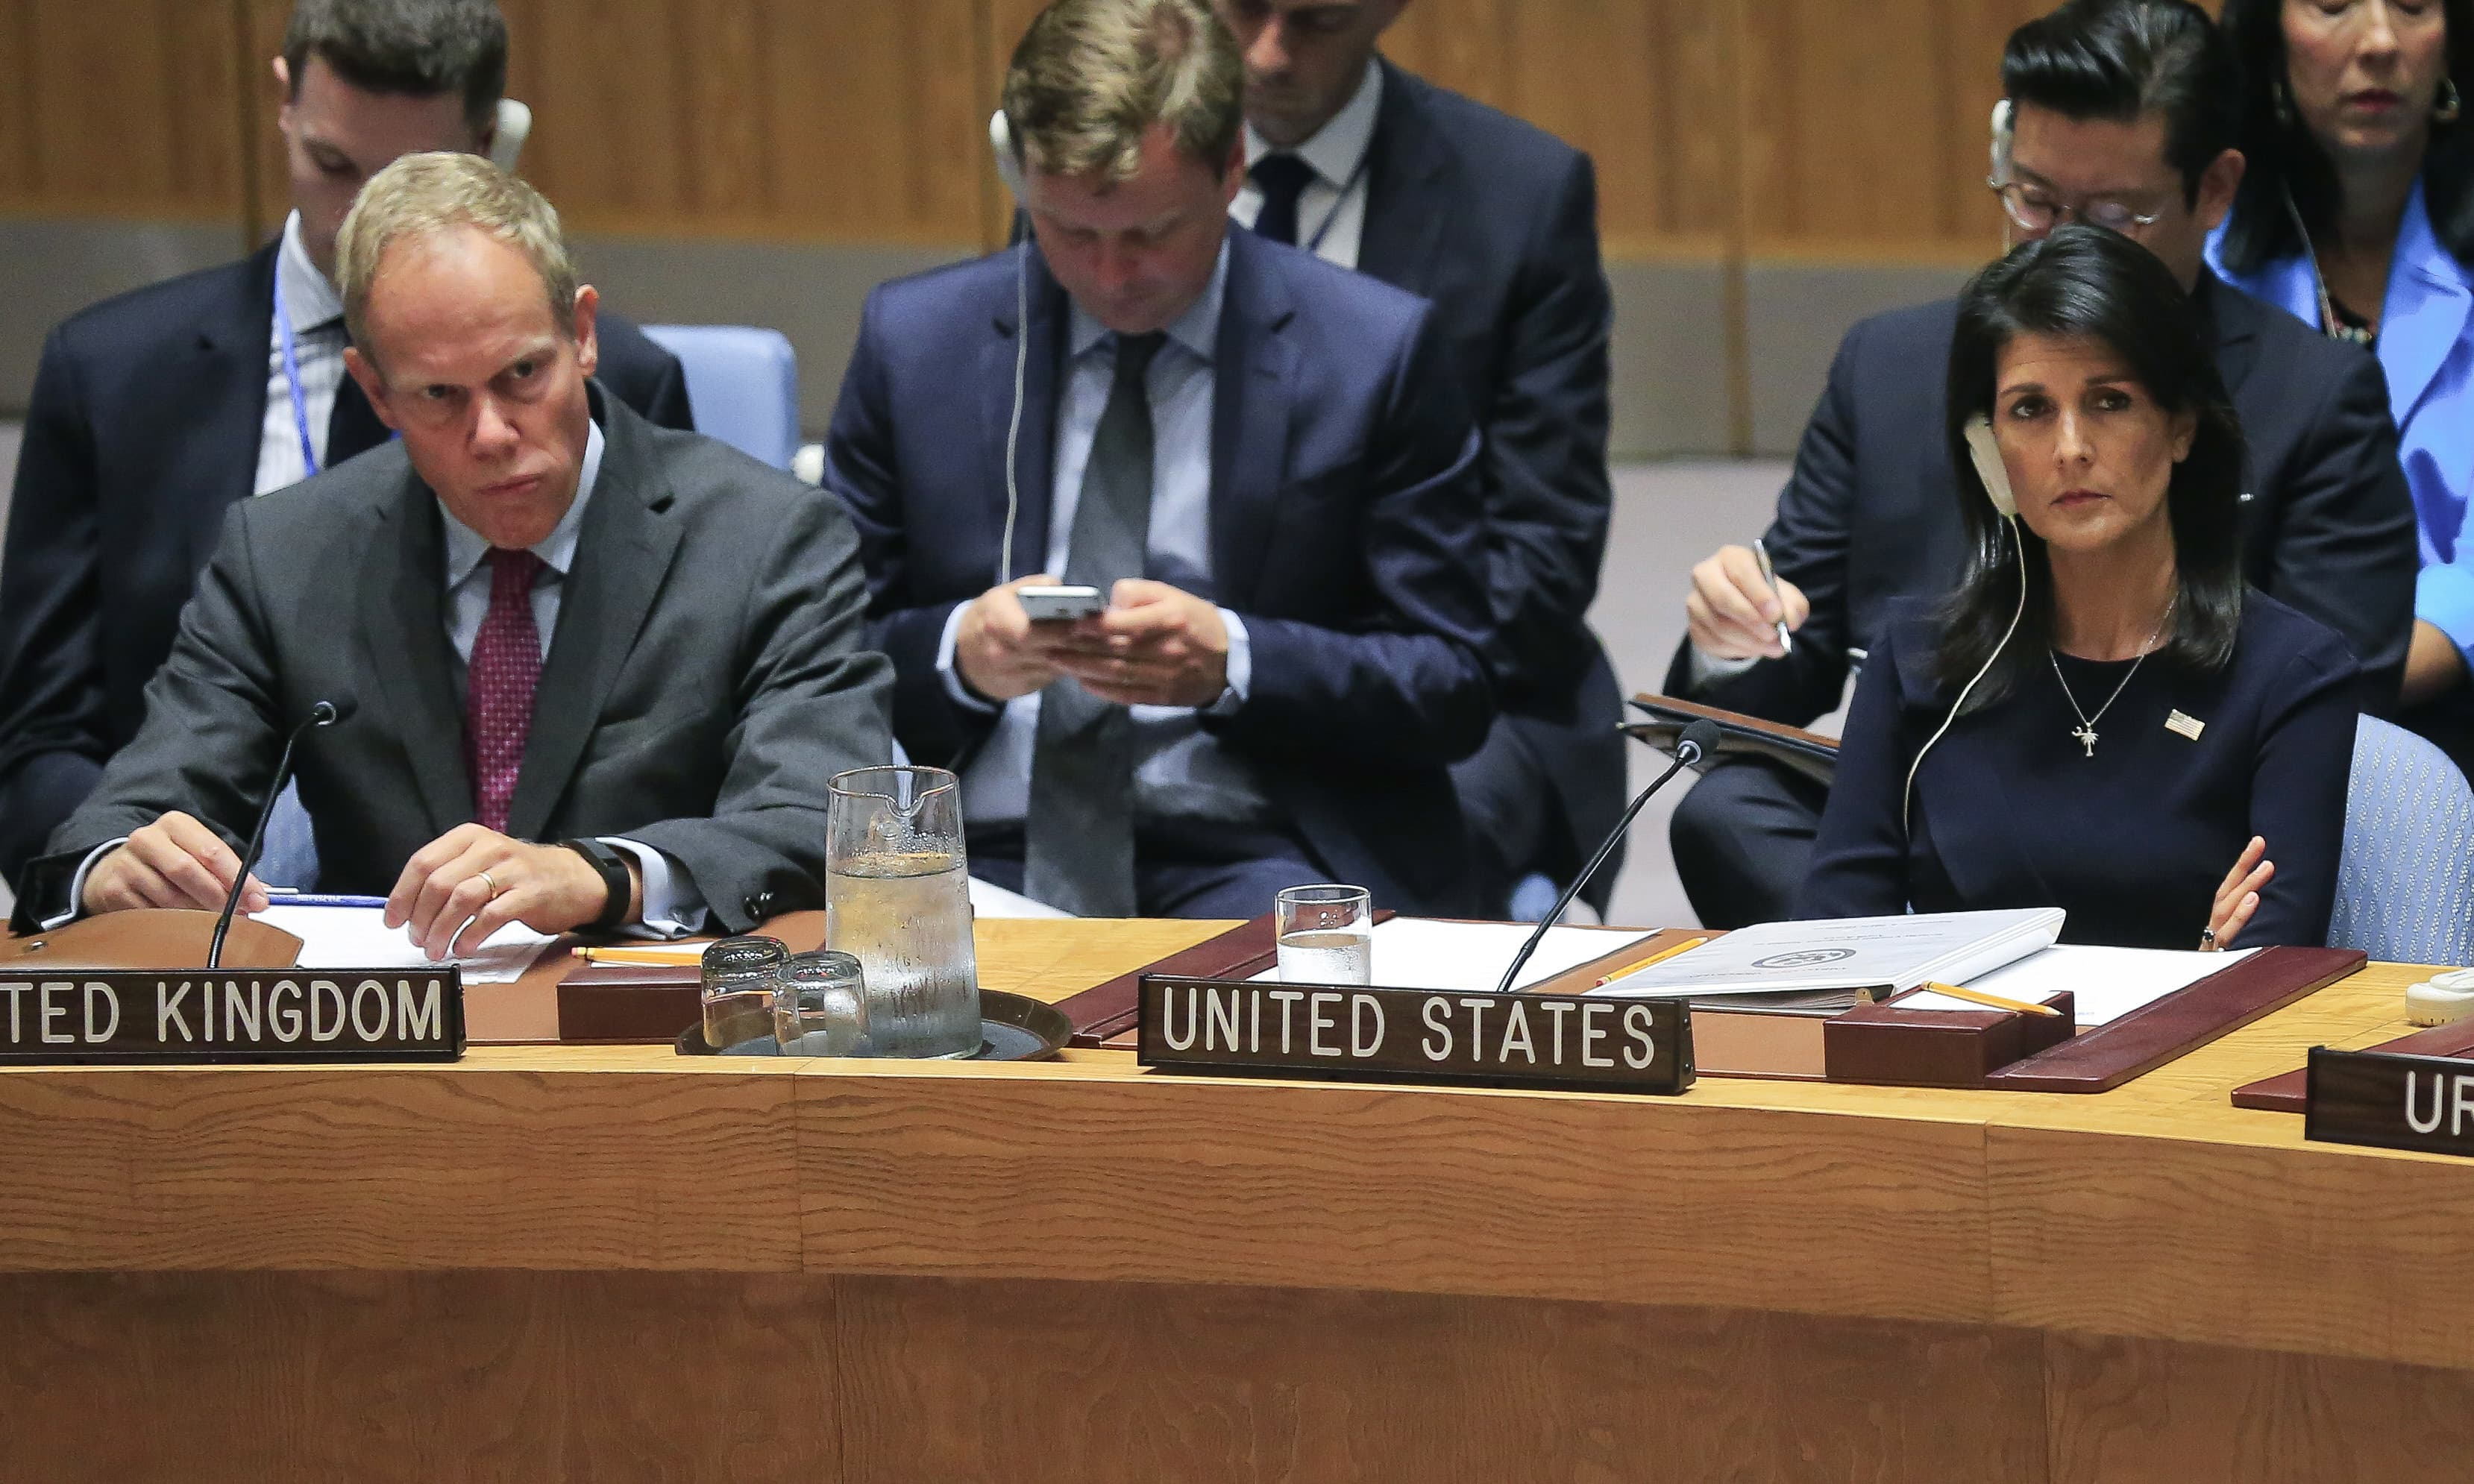 United Nations Ambassadors Matthew John Rycroft of the UK, left, and Nikki Haley of the US right, listen during the UN Security Council's non-proliferation meeting on North Korea , Monday Sept. 4, 2017 at UN headquarters. —AP